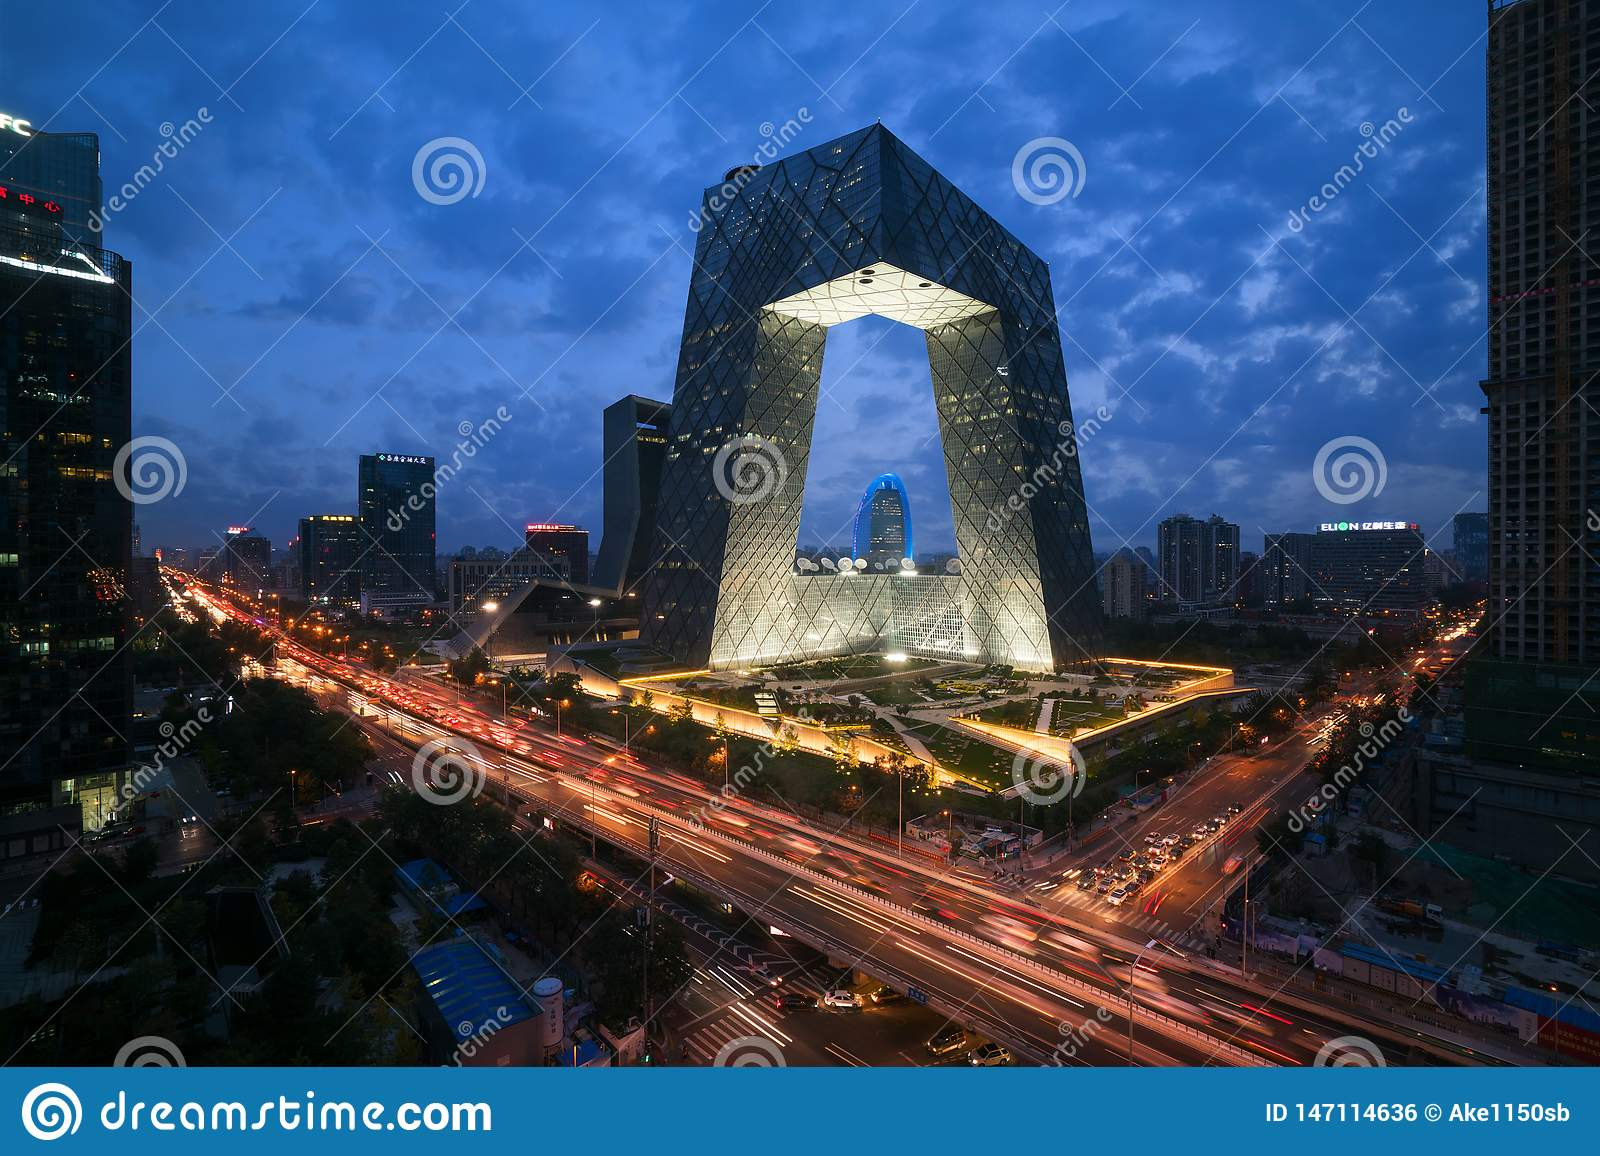 China`s Beijing City, a famous landmark building, China CCTV CCTV 234 meters tall skyscrapers is very spectacular